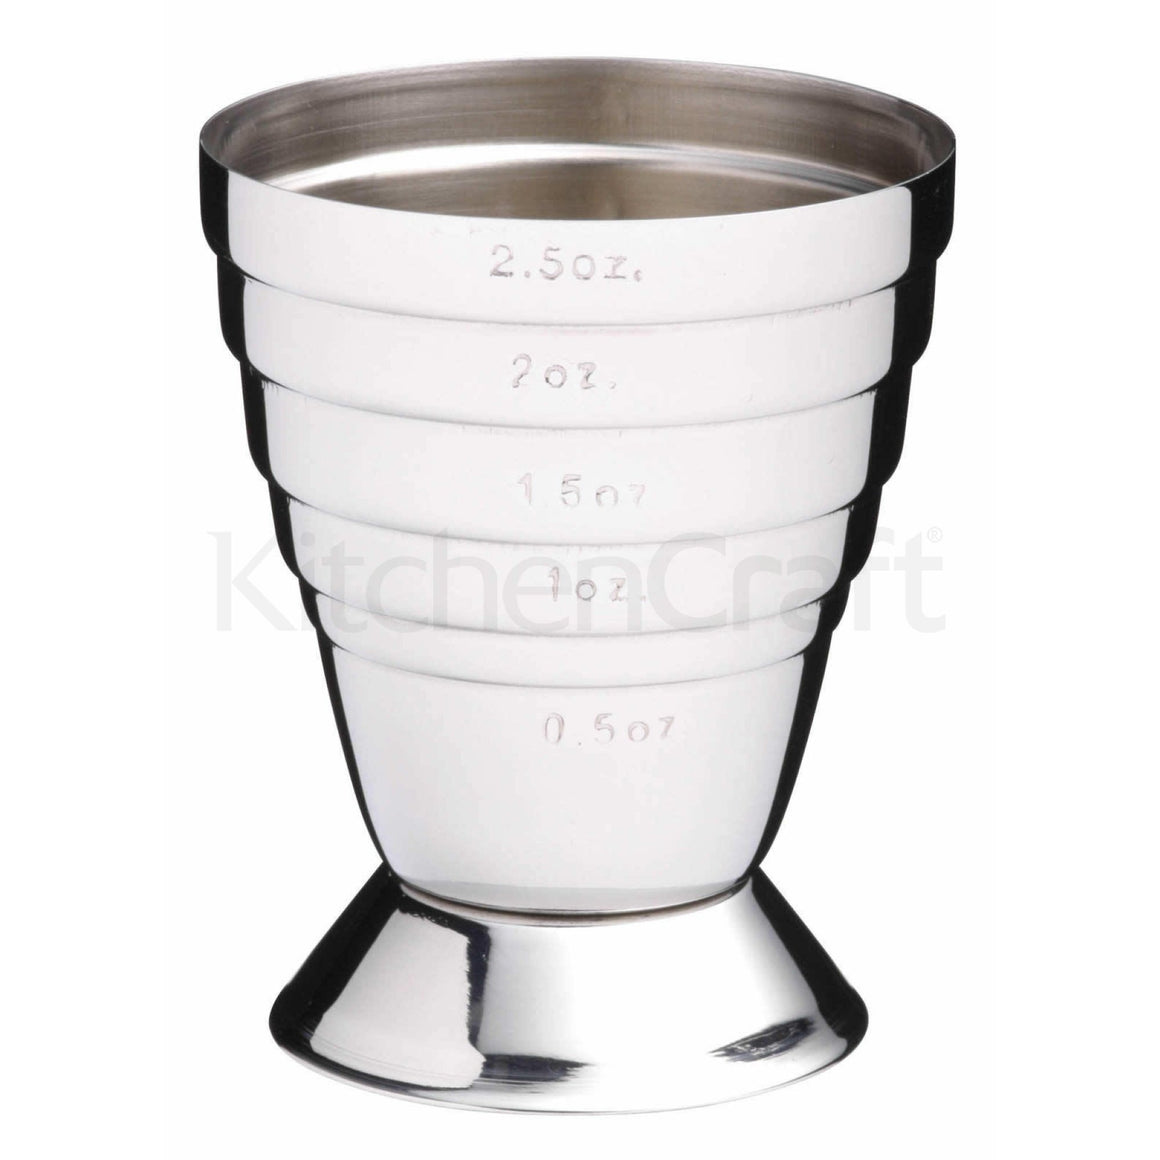 KitchenCraft Spirit Measure Cup